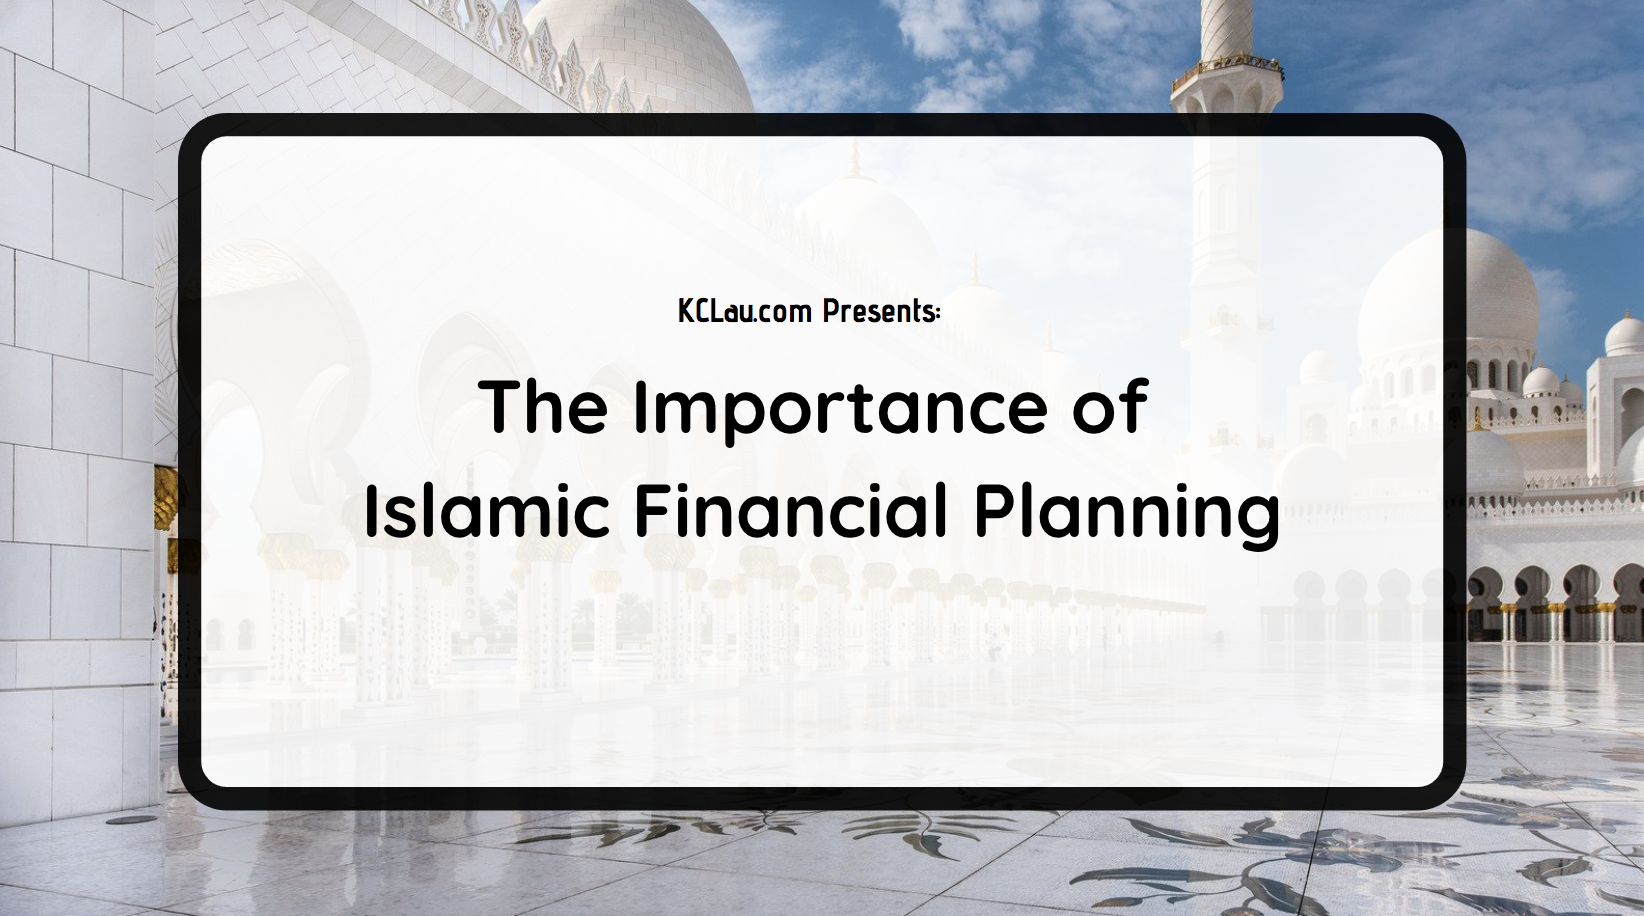 The Importance of Islamic Financial Planning